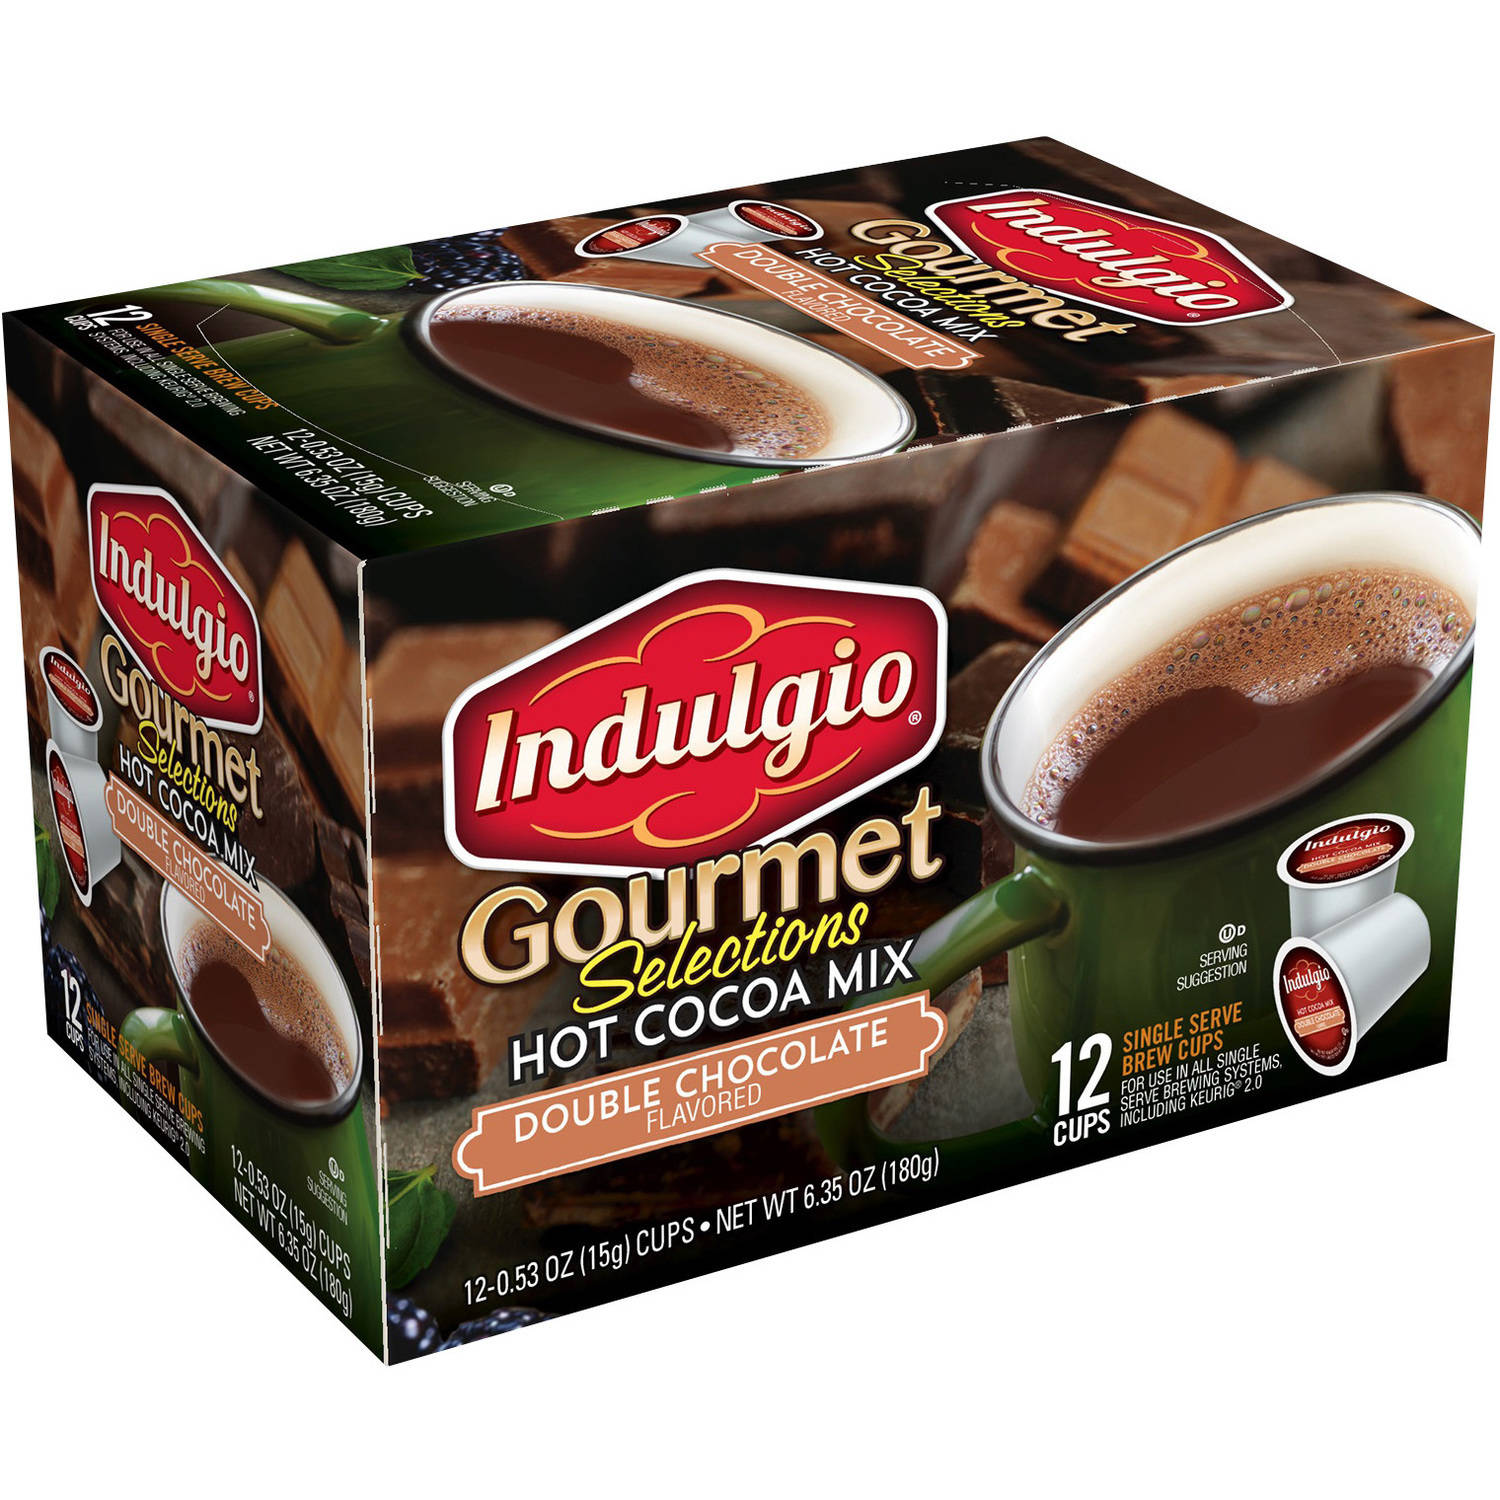 Indulgio Gourmet Selections Double Chocolate Hot Cocoa Mix K-Cups, 0.53 oz, 12 count by Trilliant Food